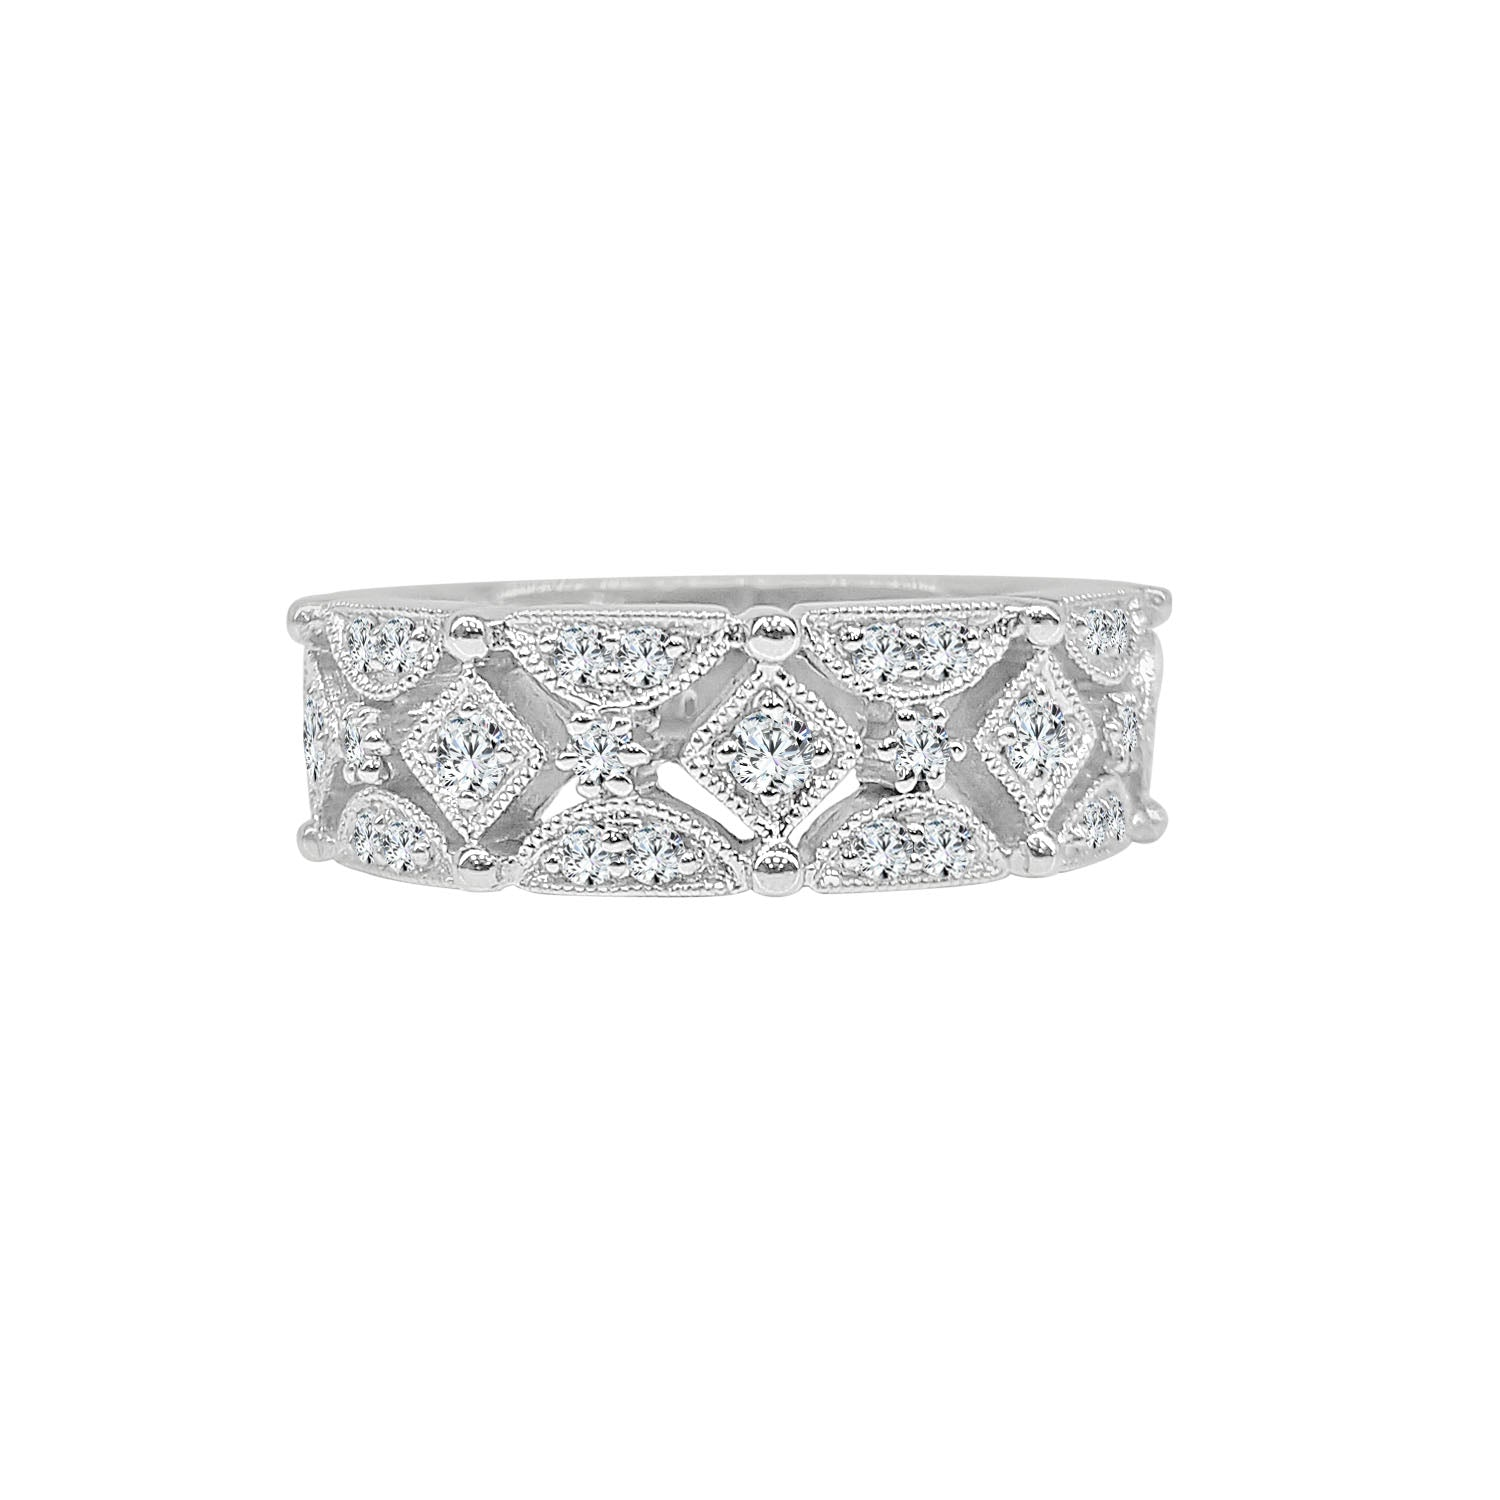 Fancy Antique Style Diamond Ring